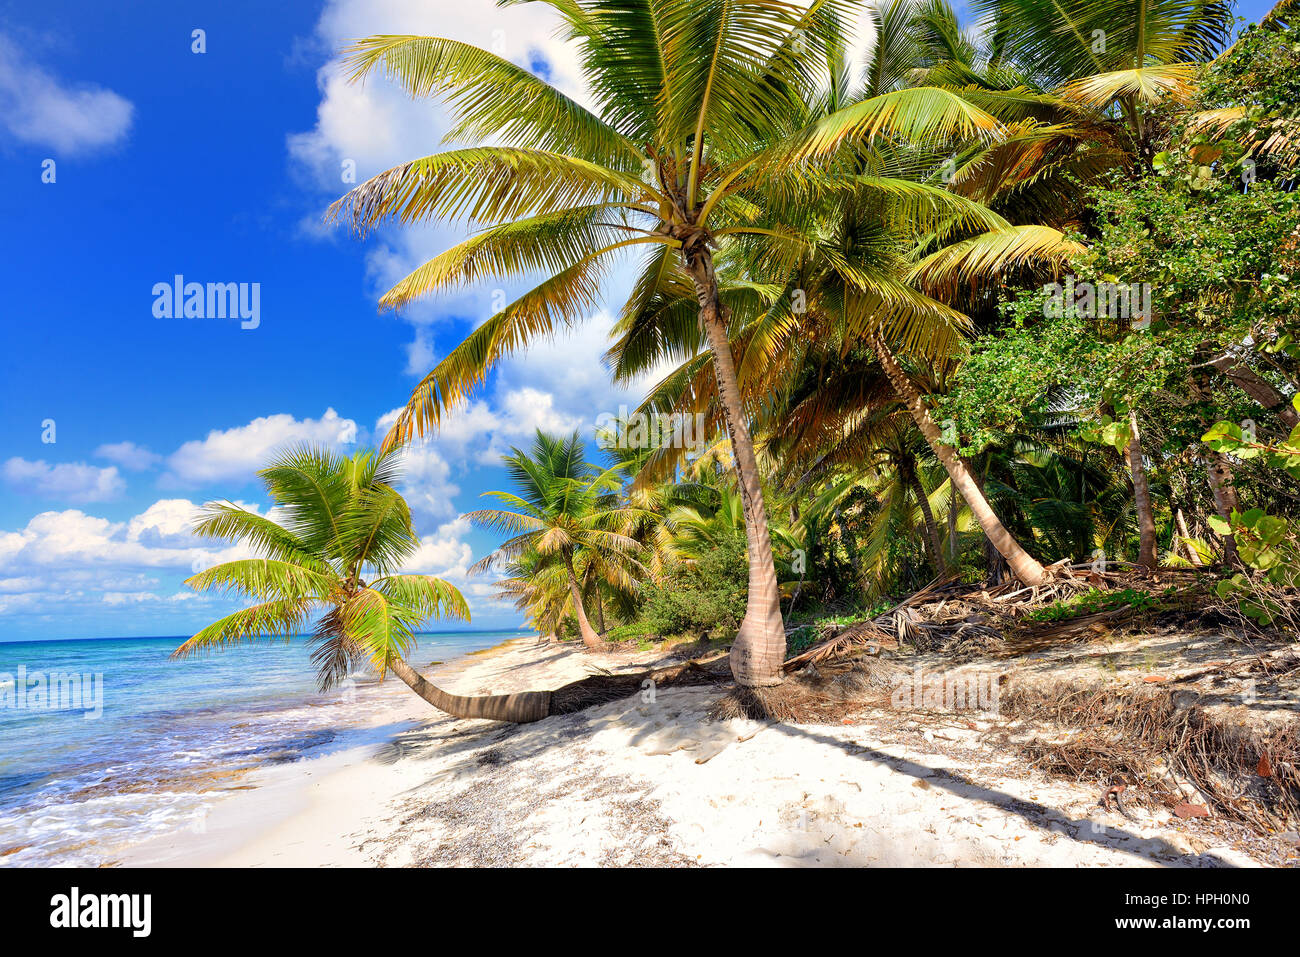 Tropical scenery. Beautiful palm beach with turquoise waters and white sand. Tropical vacations. Relaxing tropical - Stock Image